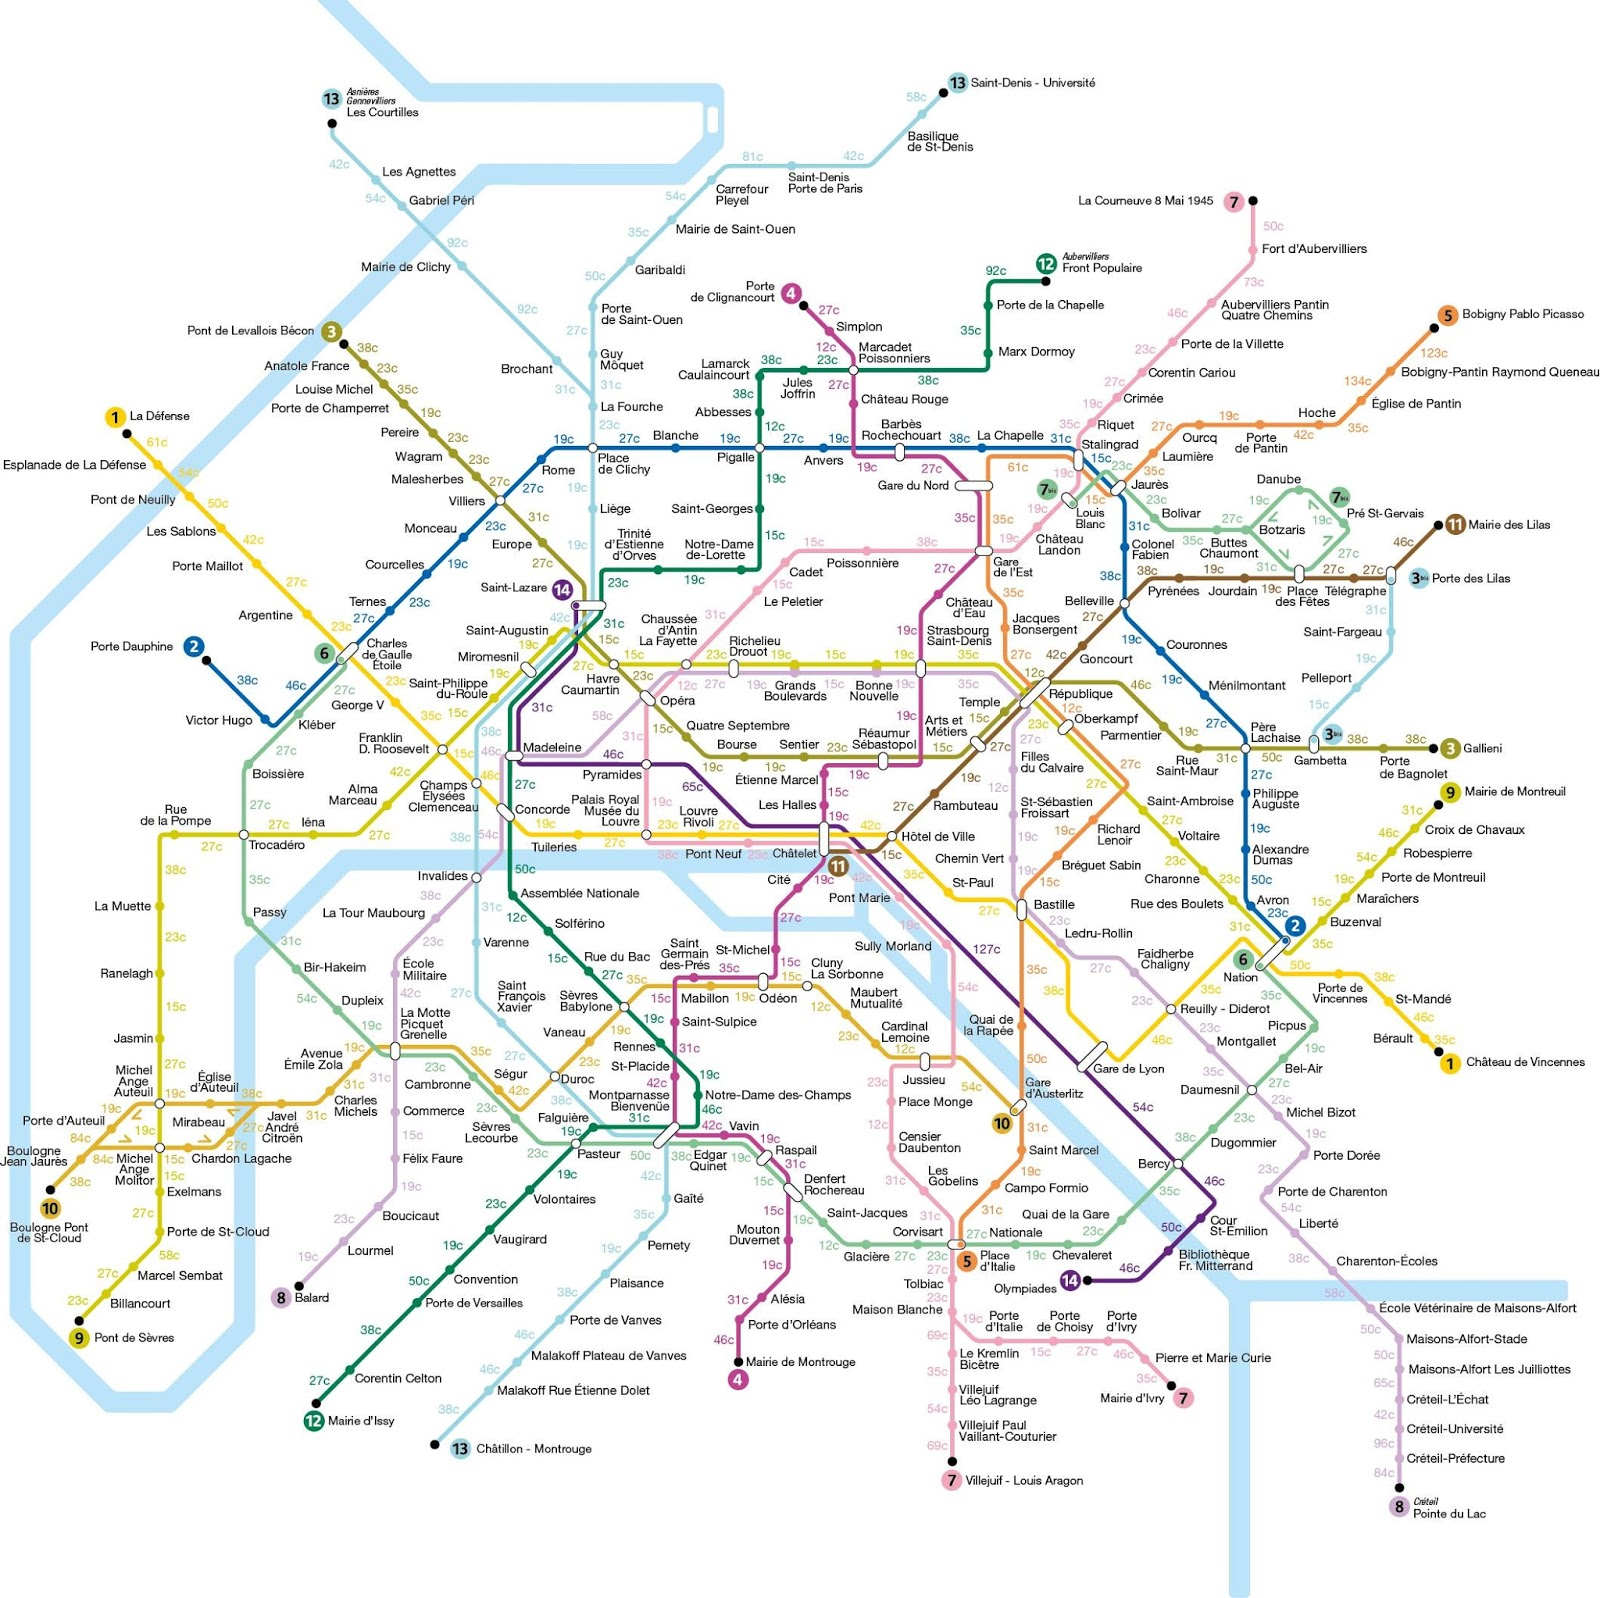 Map of Paris subway system that shows how many calories you would burn walking between stations